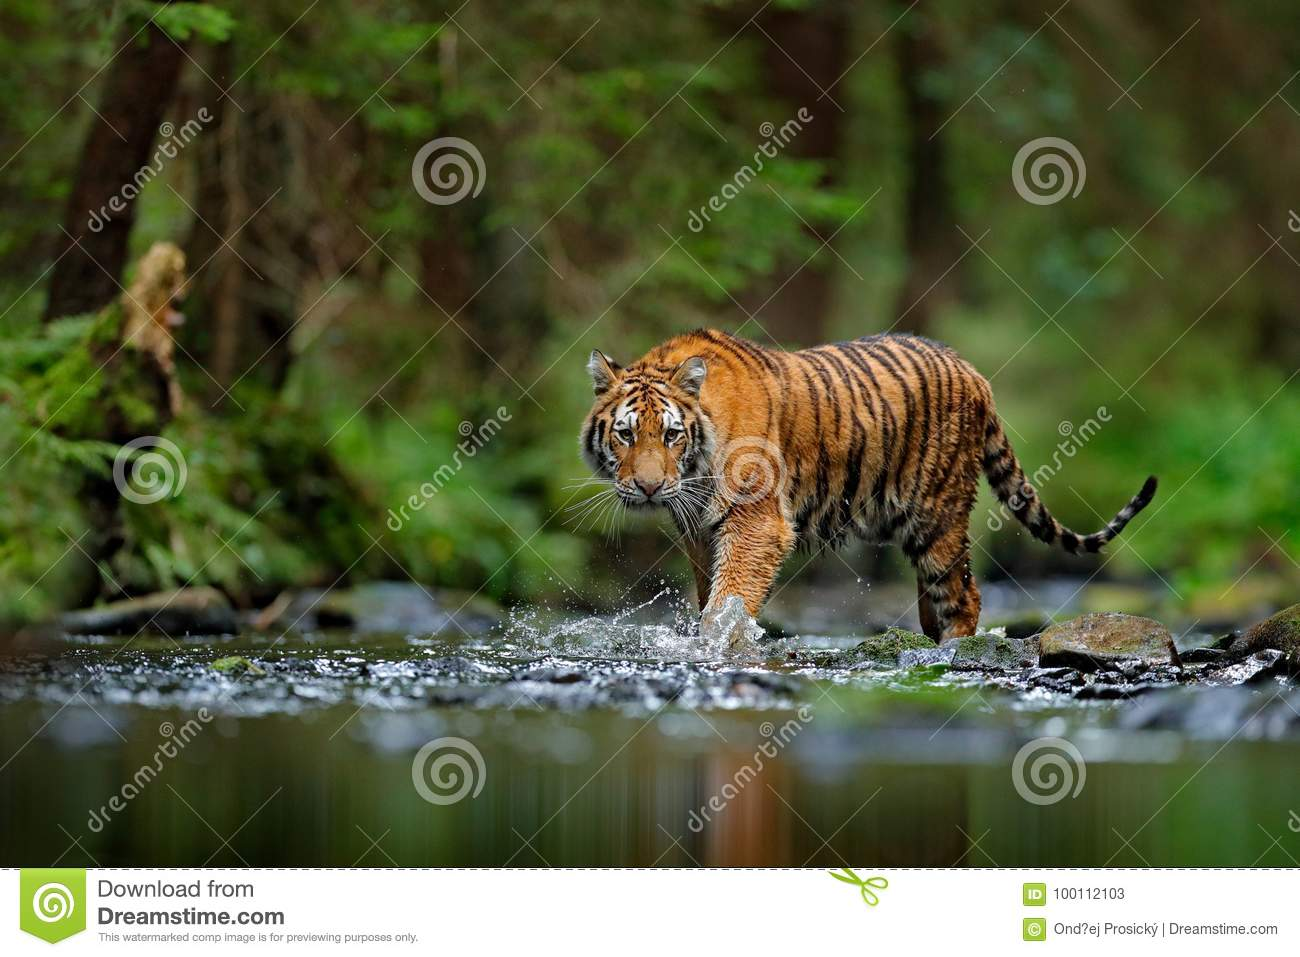 Amur tiger walking in river water. Danger animal, tajga, Russia. Animal in green forest stream. Grey stone, river droplet. Siberia